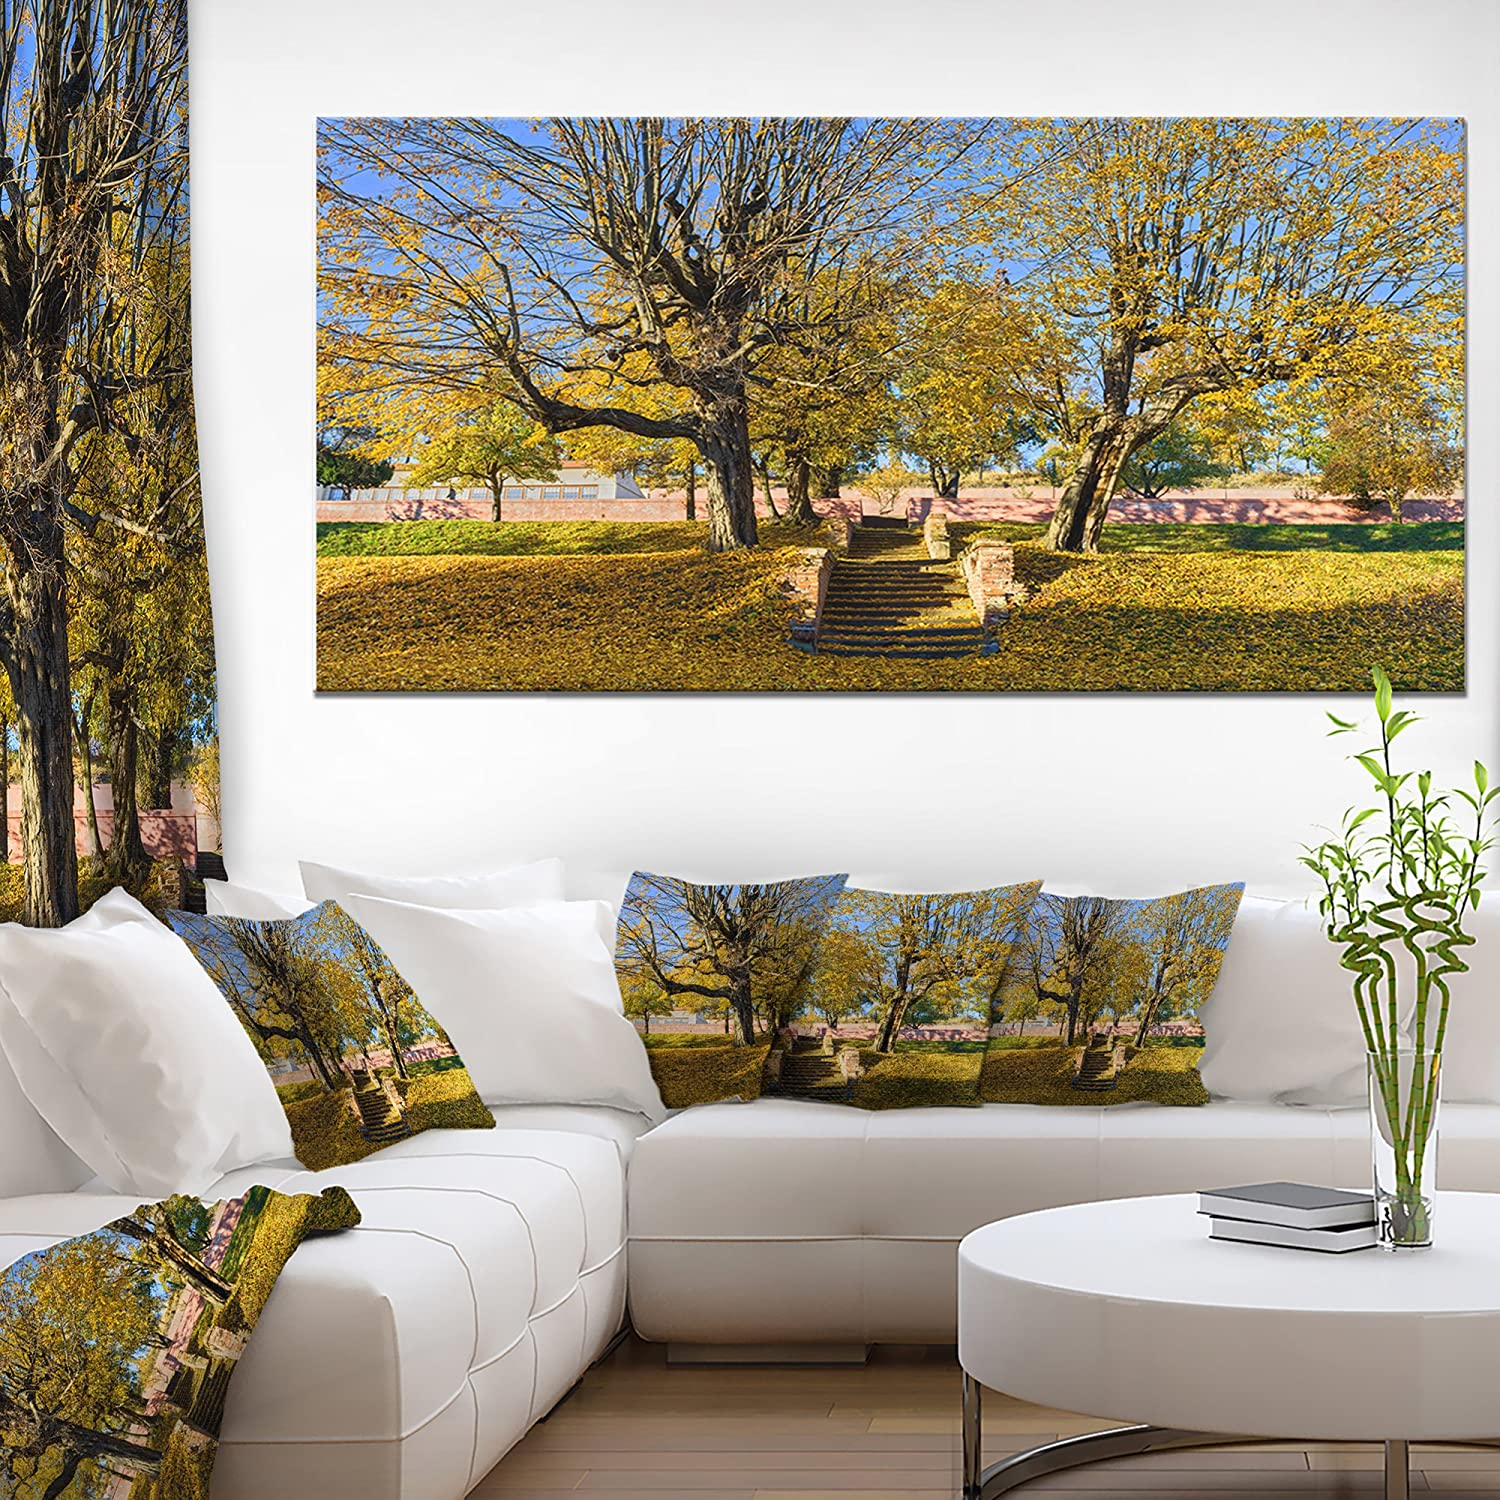 Design Art 1 Piece Stone Stairs In Park In Fall Landscape Wall Art Canvas Print 60x28 Amazon In Home Kitchen